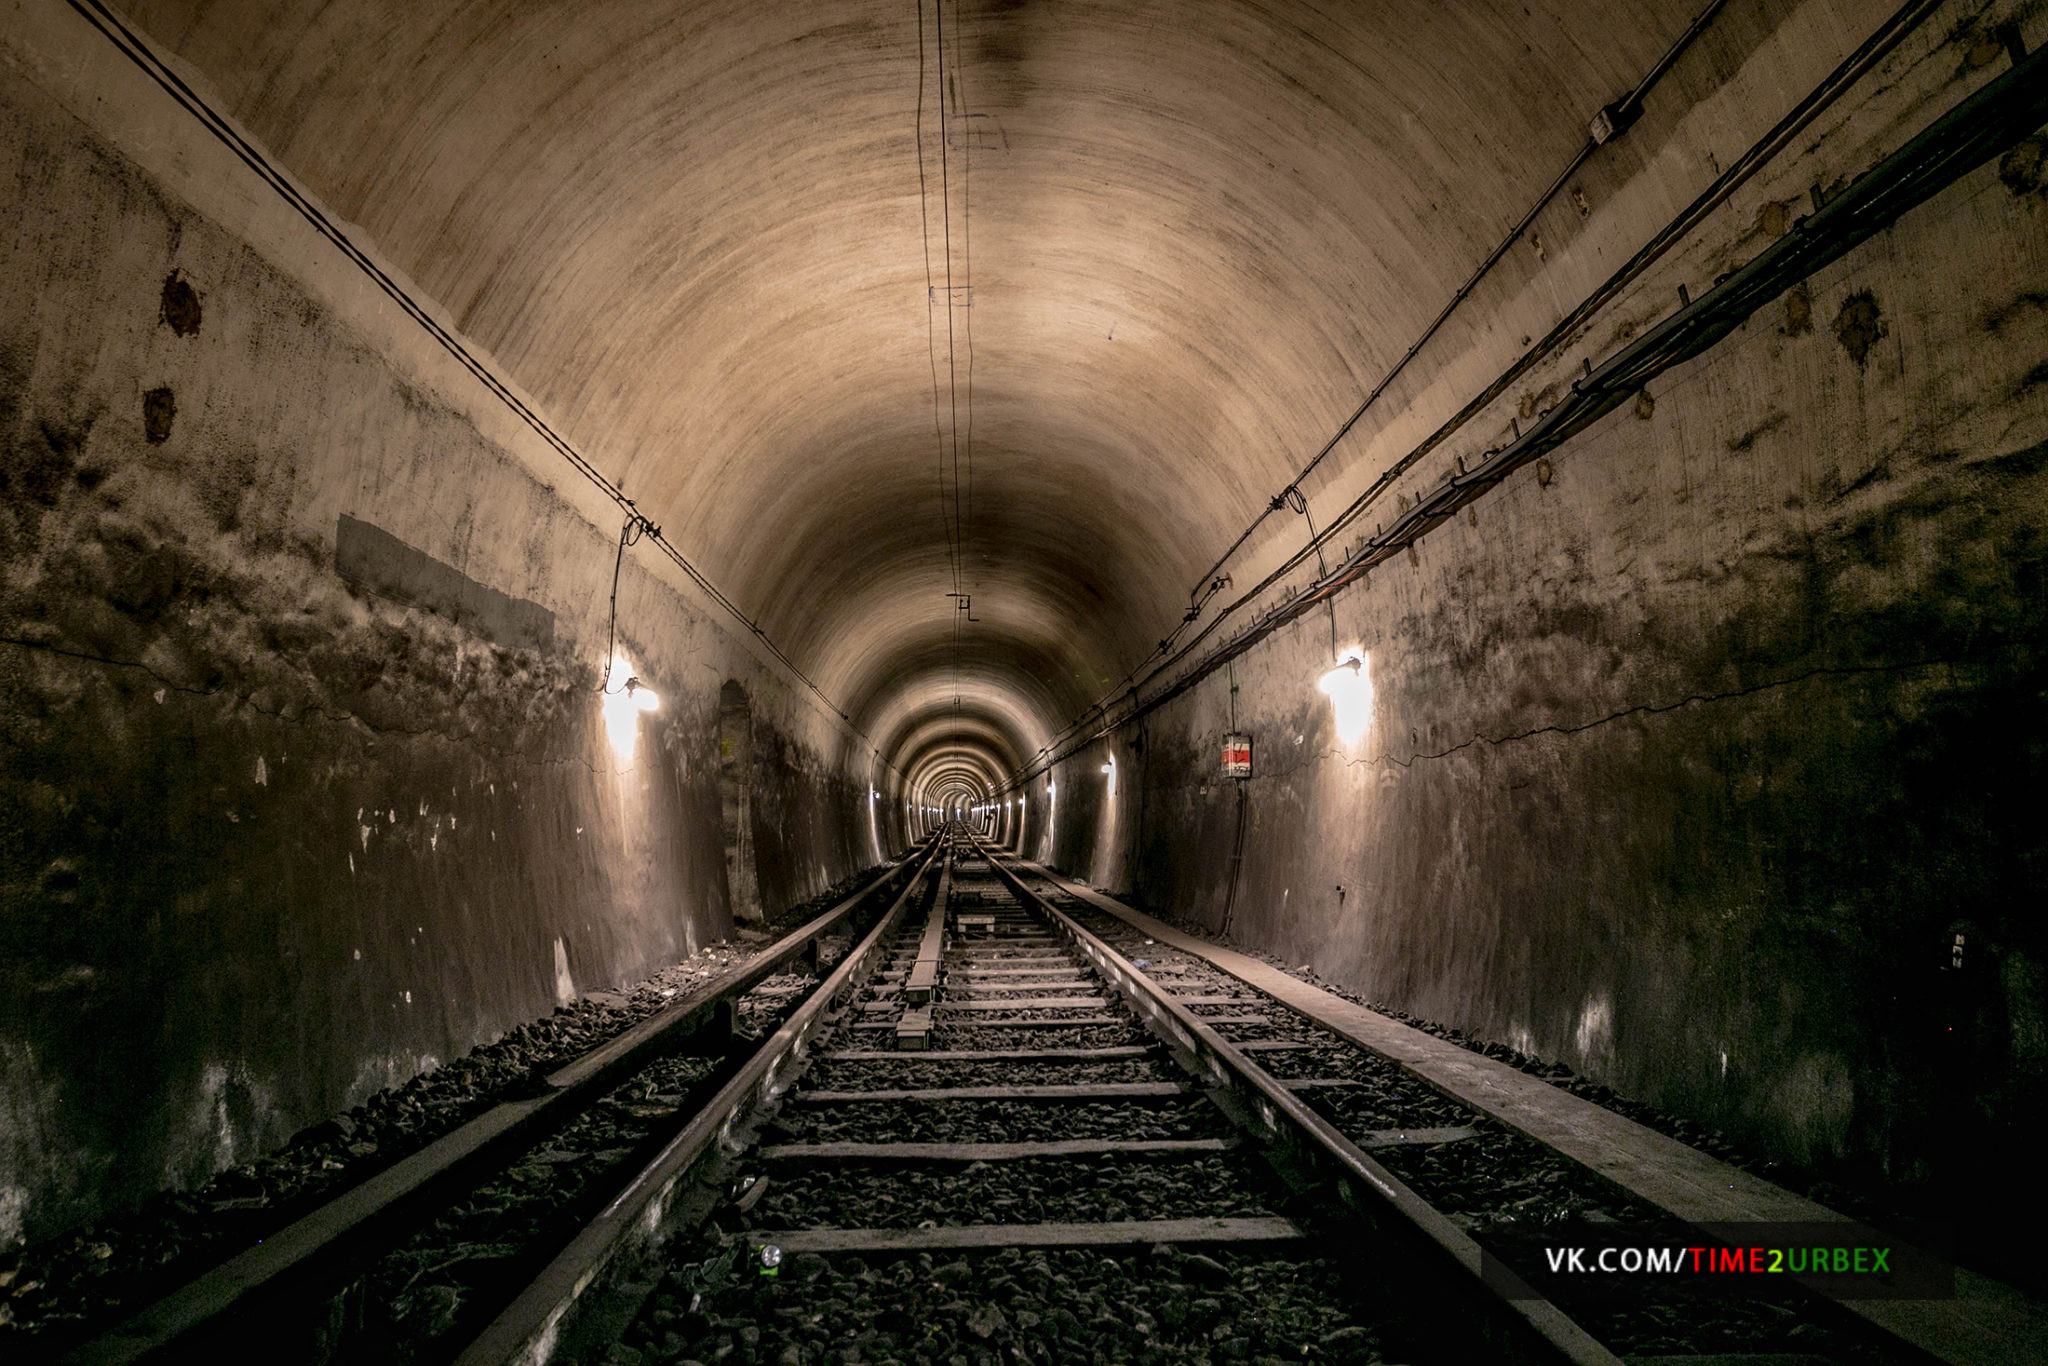 60 7 GHOST STATIONS OF THE PARIS METRO AND HOW TO GET INTO THE ILLEGALLY + UNUSUAL TUNNELS + RER